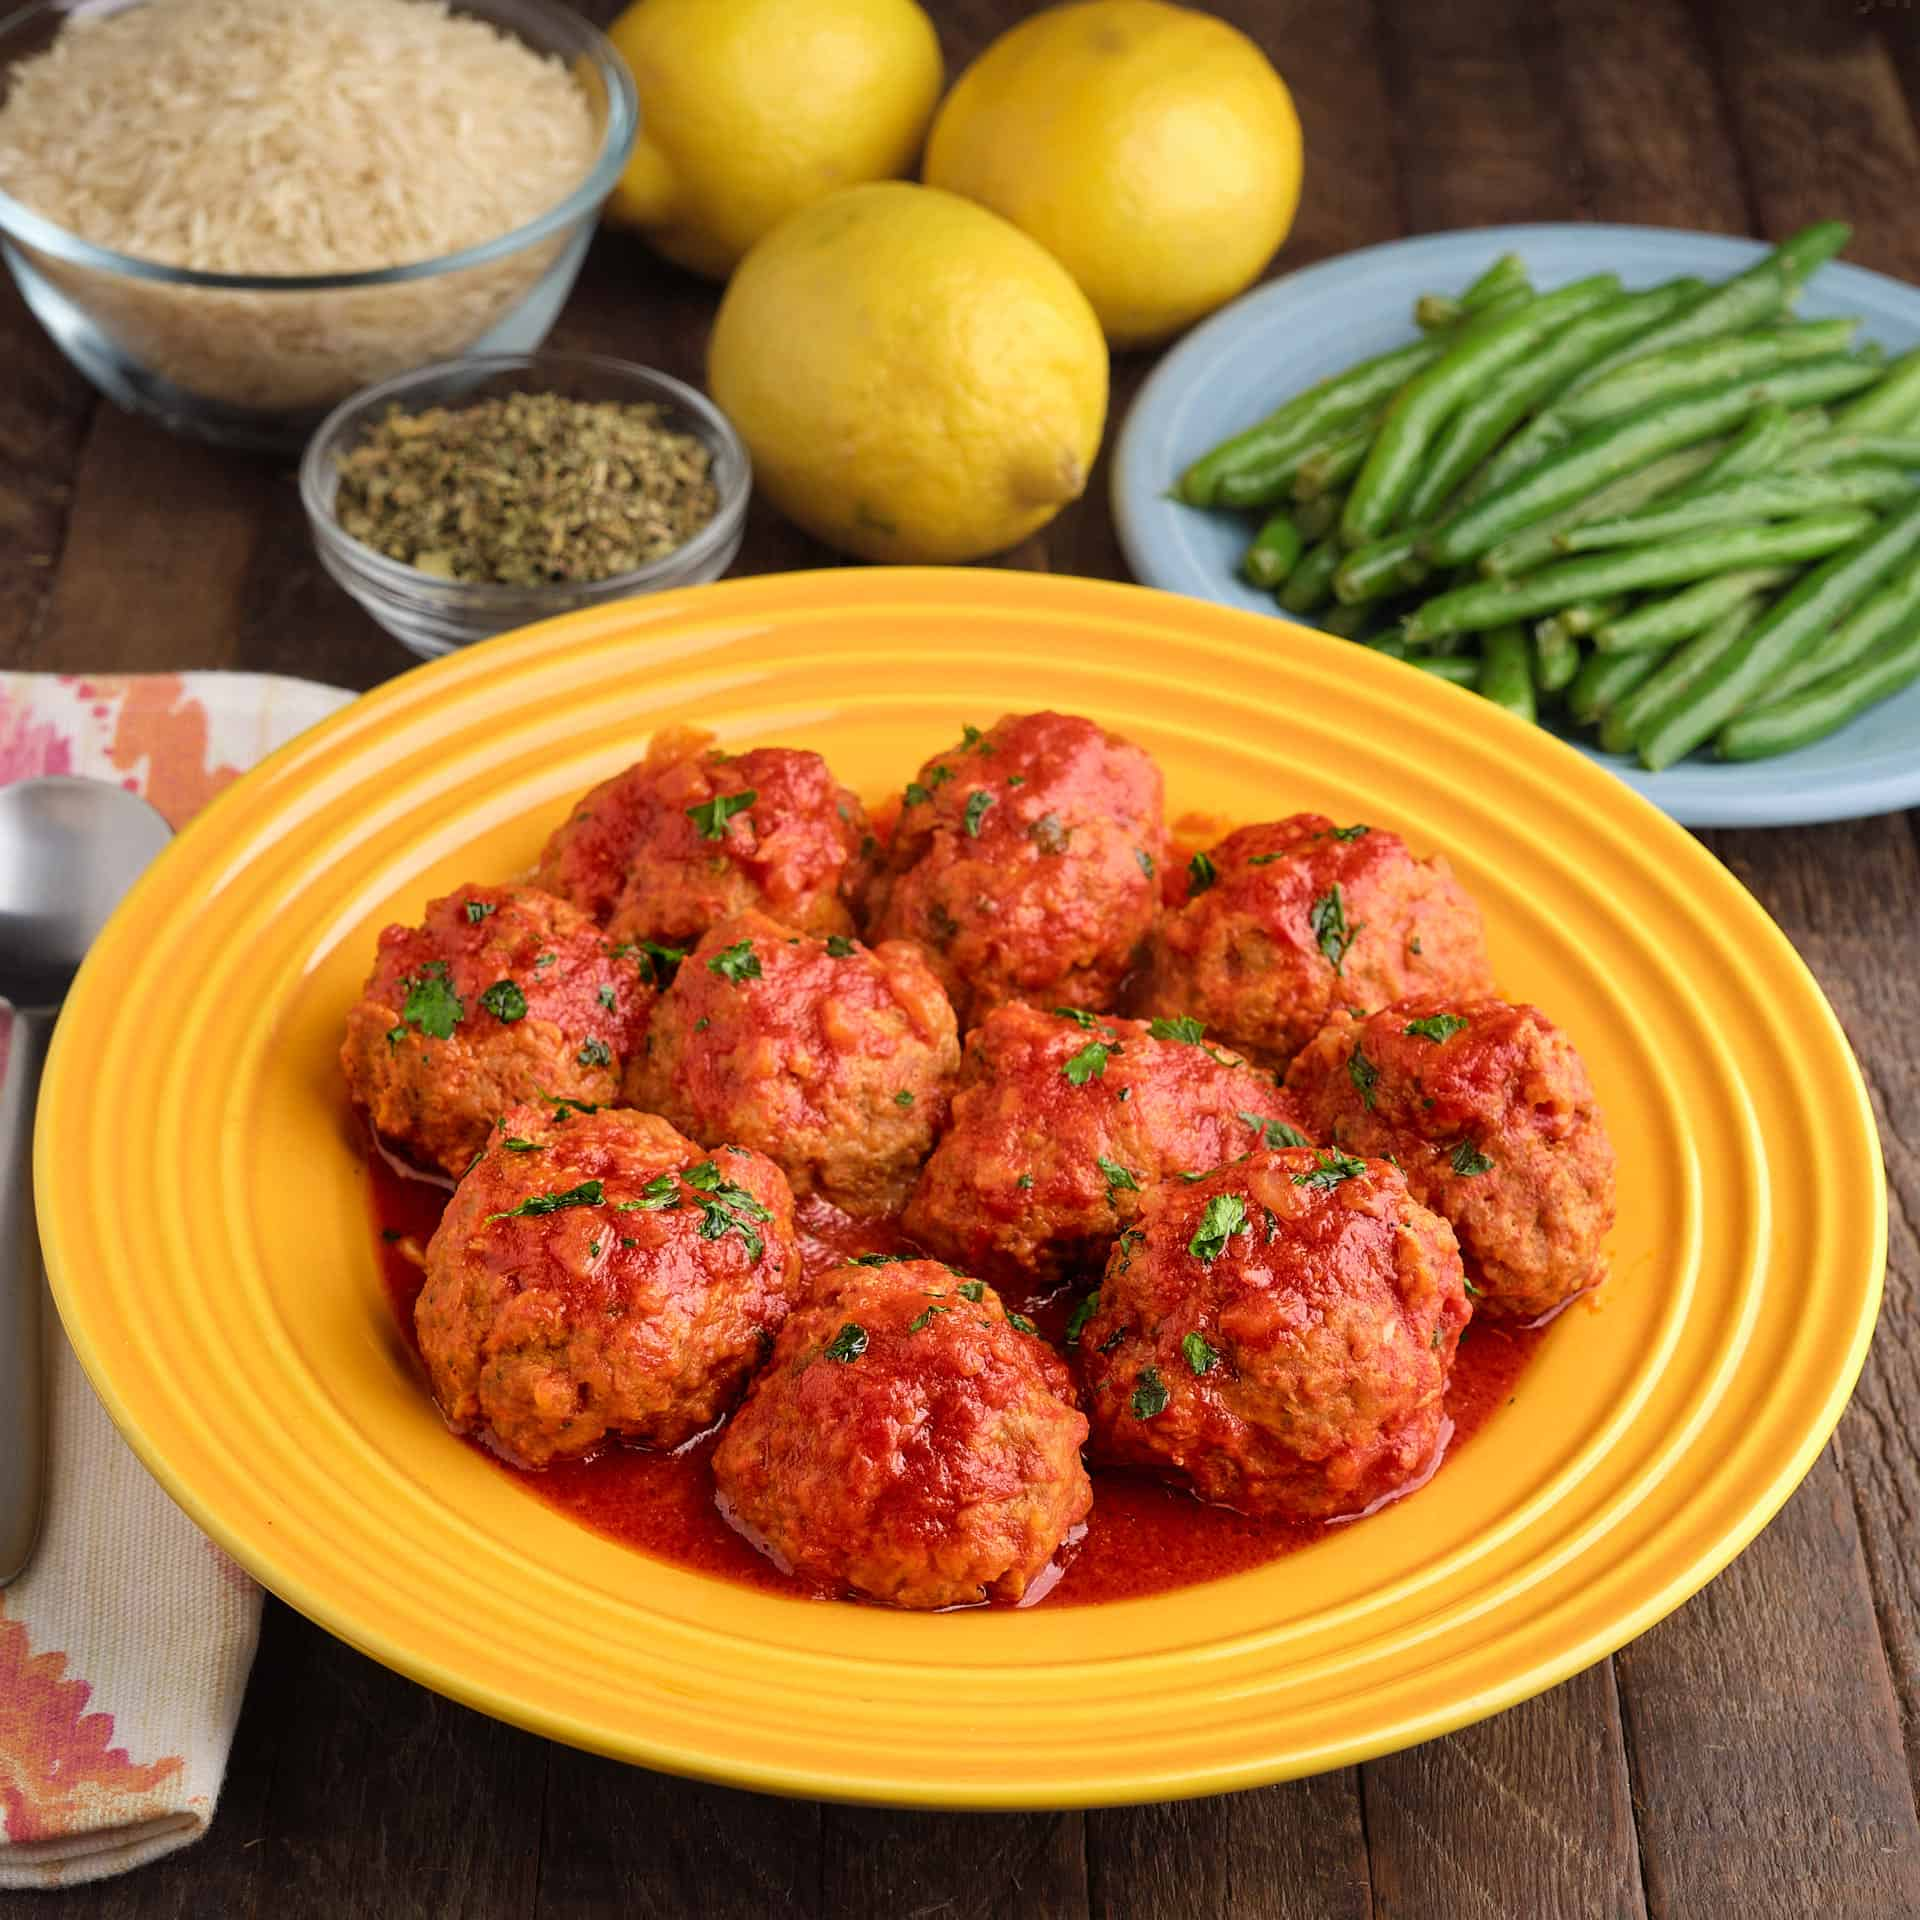 A plate of Greek meatballs in tomato sauce, with green beans, lemons, oregano, and rice in the background